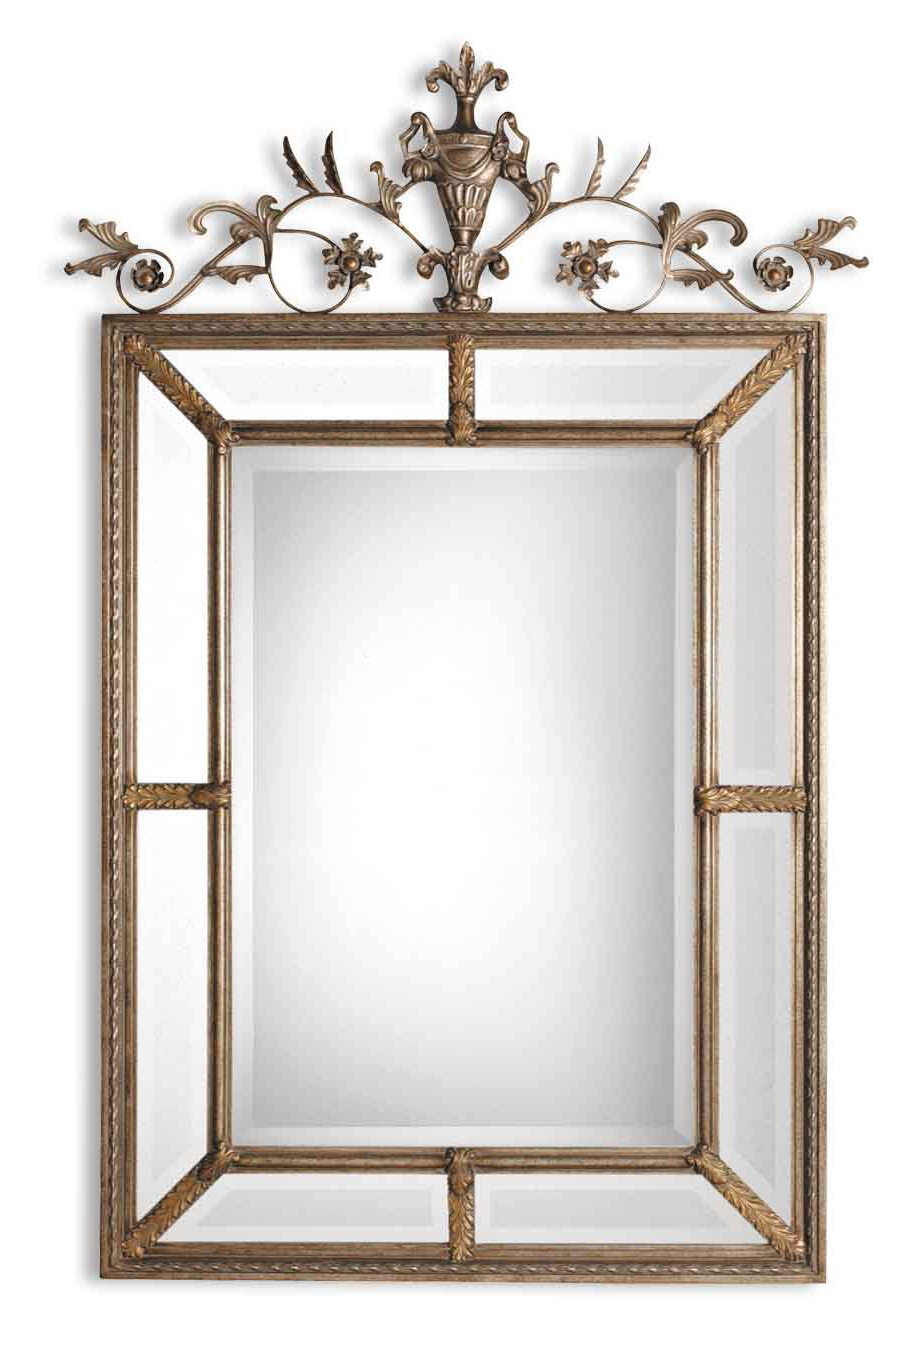 Le Vau Vertical Large Wall Mirroruttermost – 41″ X 63″ Pertaining To Favorite Wall Mirrors With Shutters (View 17 of 20)